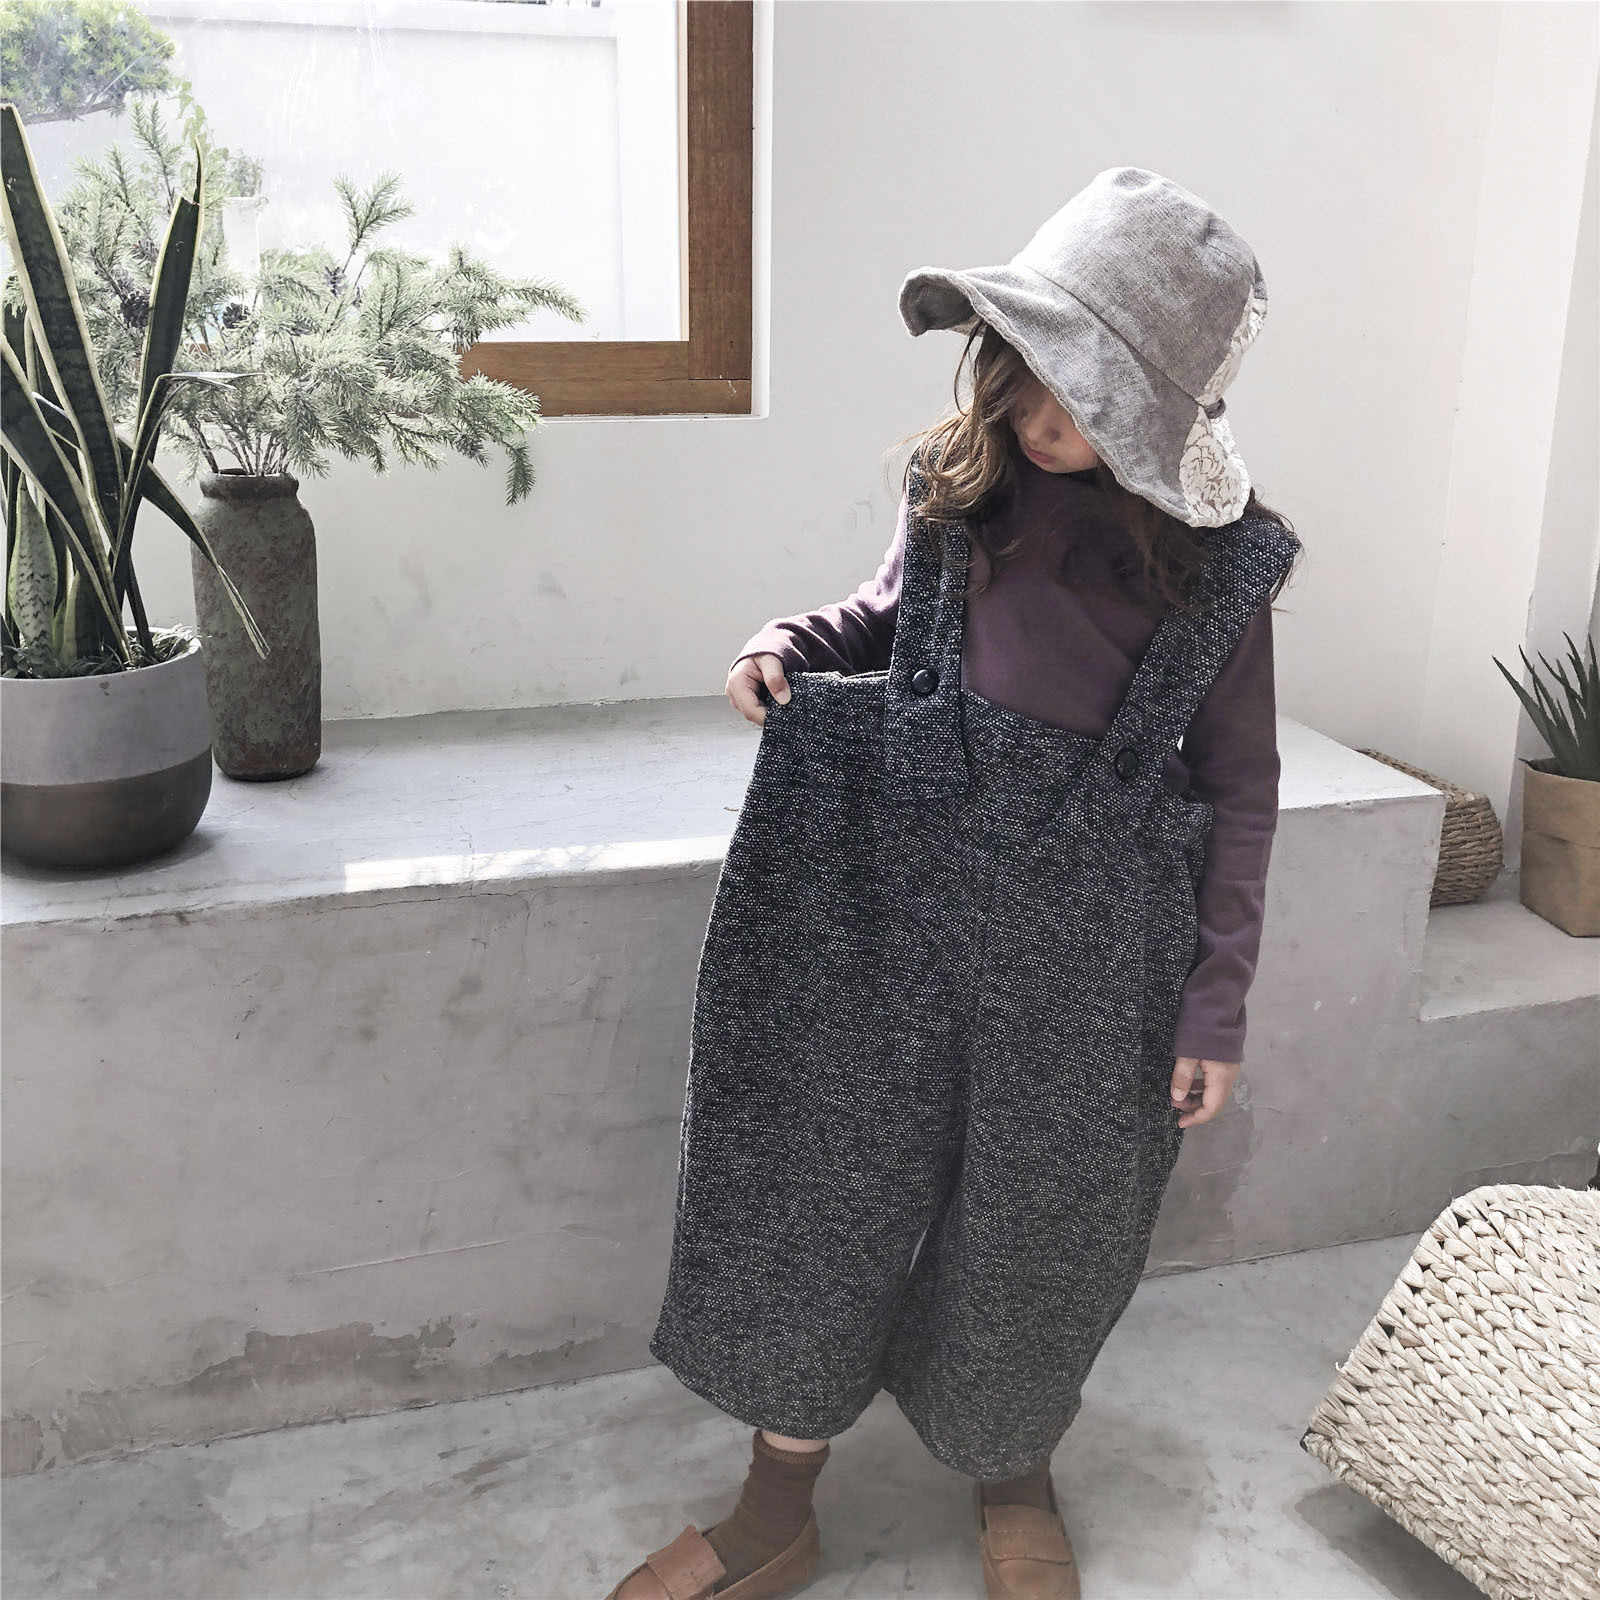 c6f29809acb ... 2019 new spring thick warm girls gray jumpsuit rompers for 3 - 12 yrs  little girls